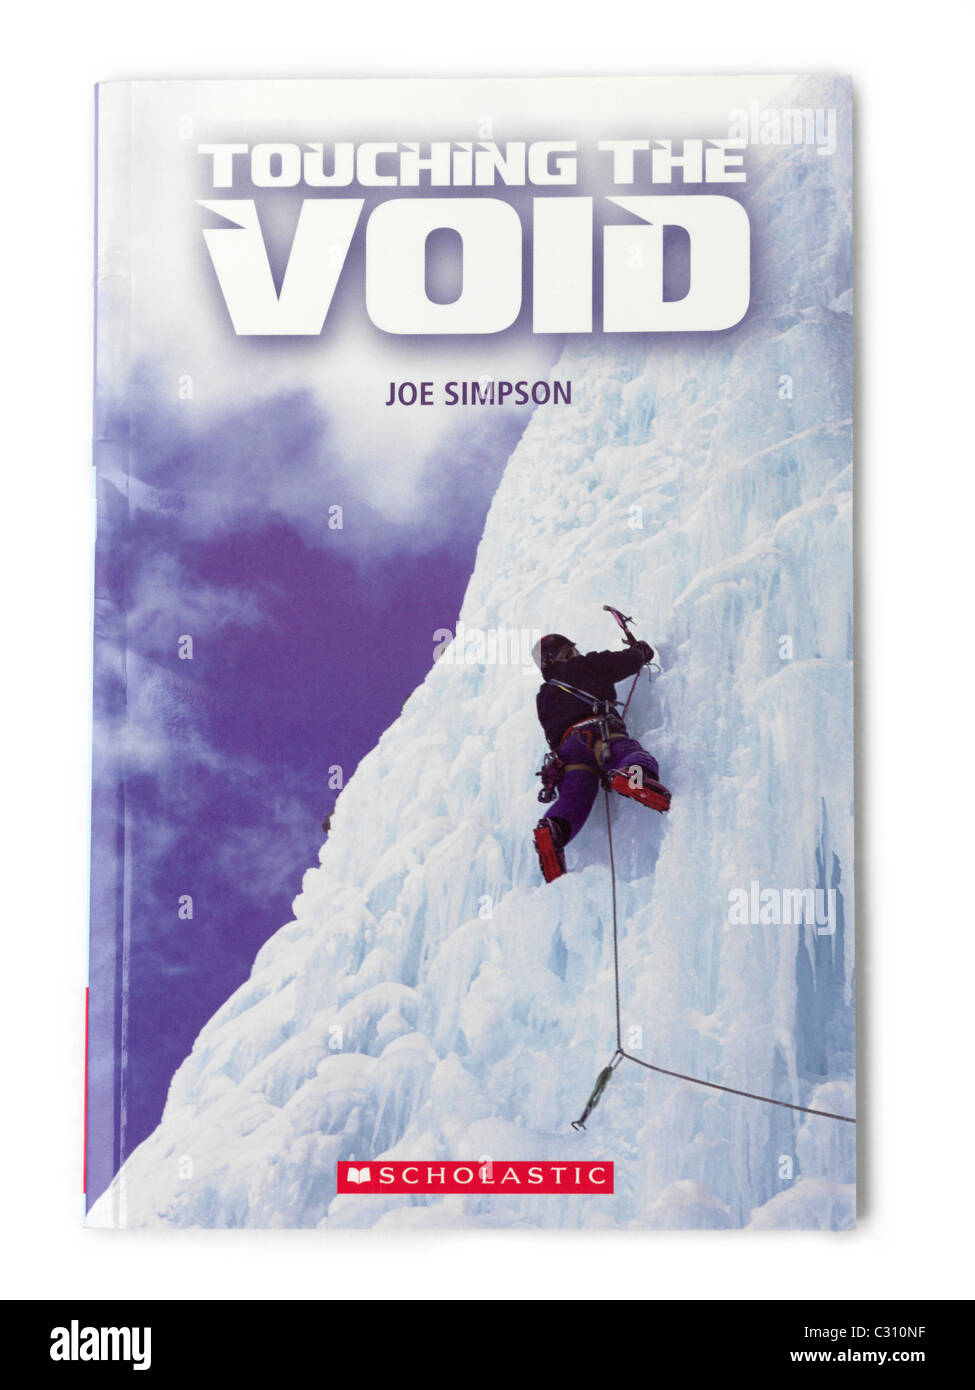 Book Cover Touching The Void By Joe Simpson - Stock Image